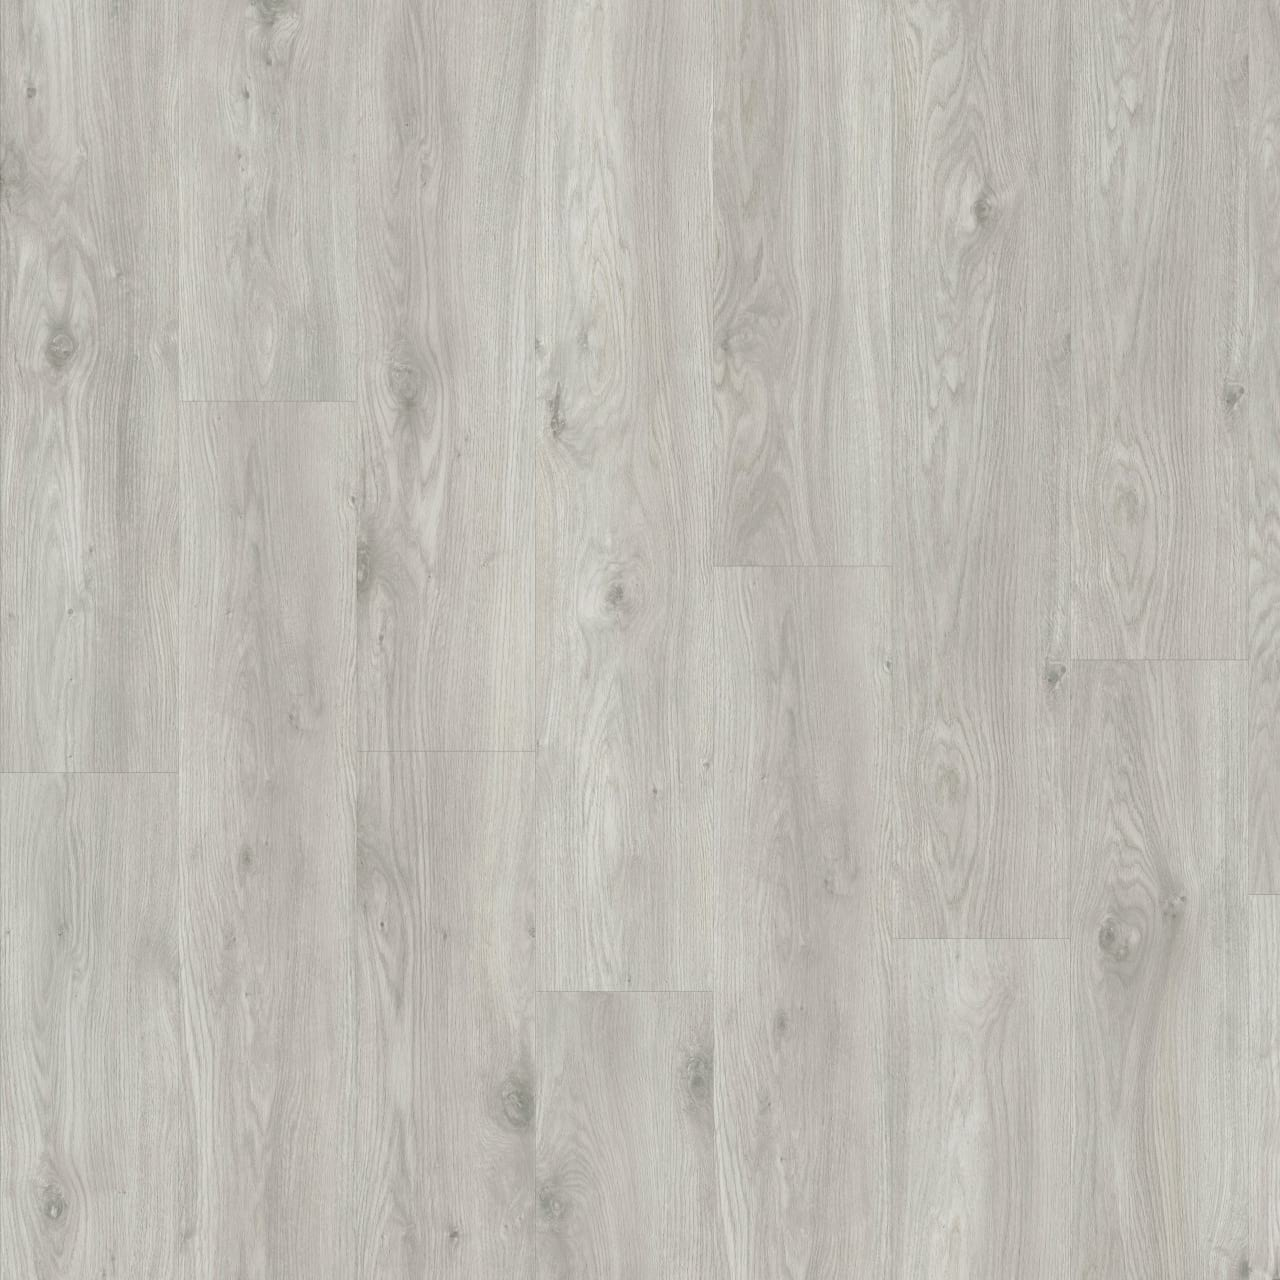 Виниловый пол Moduleo Transform LayRed Eir Sierra Oak 58933